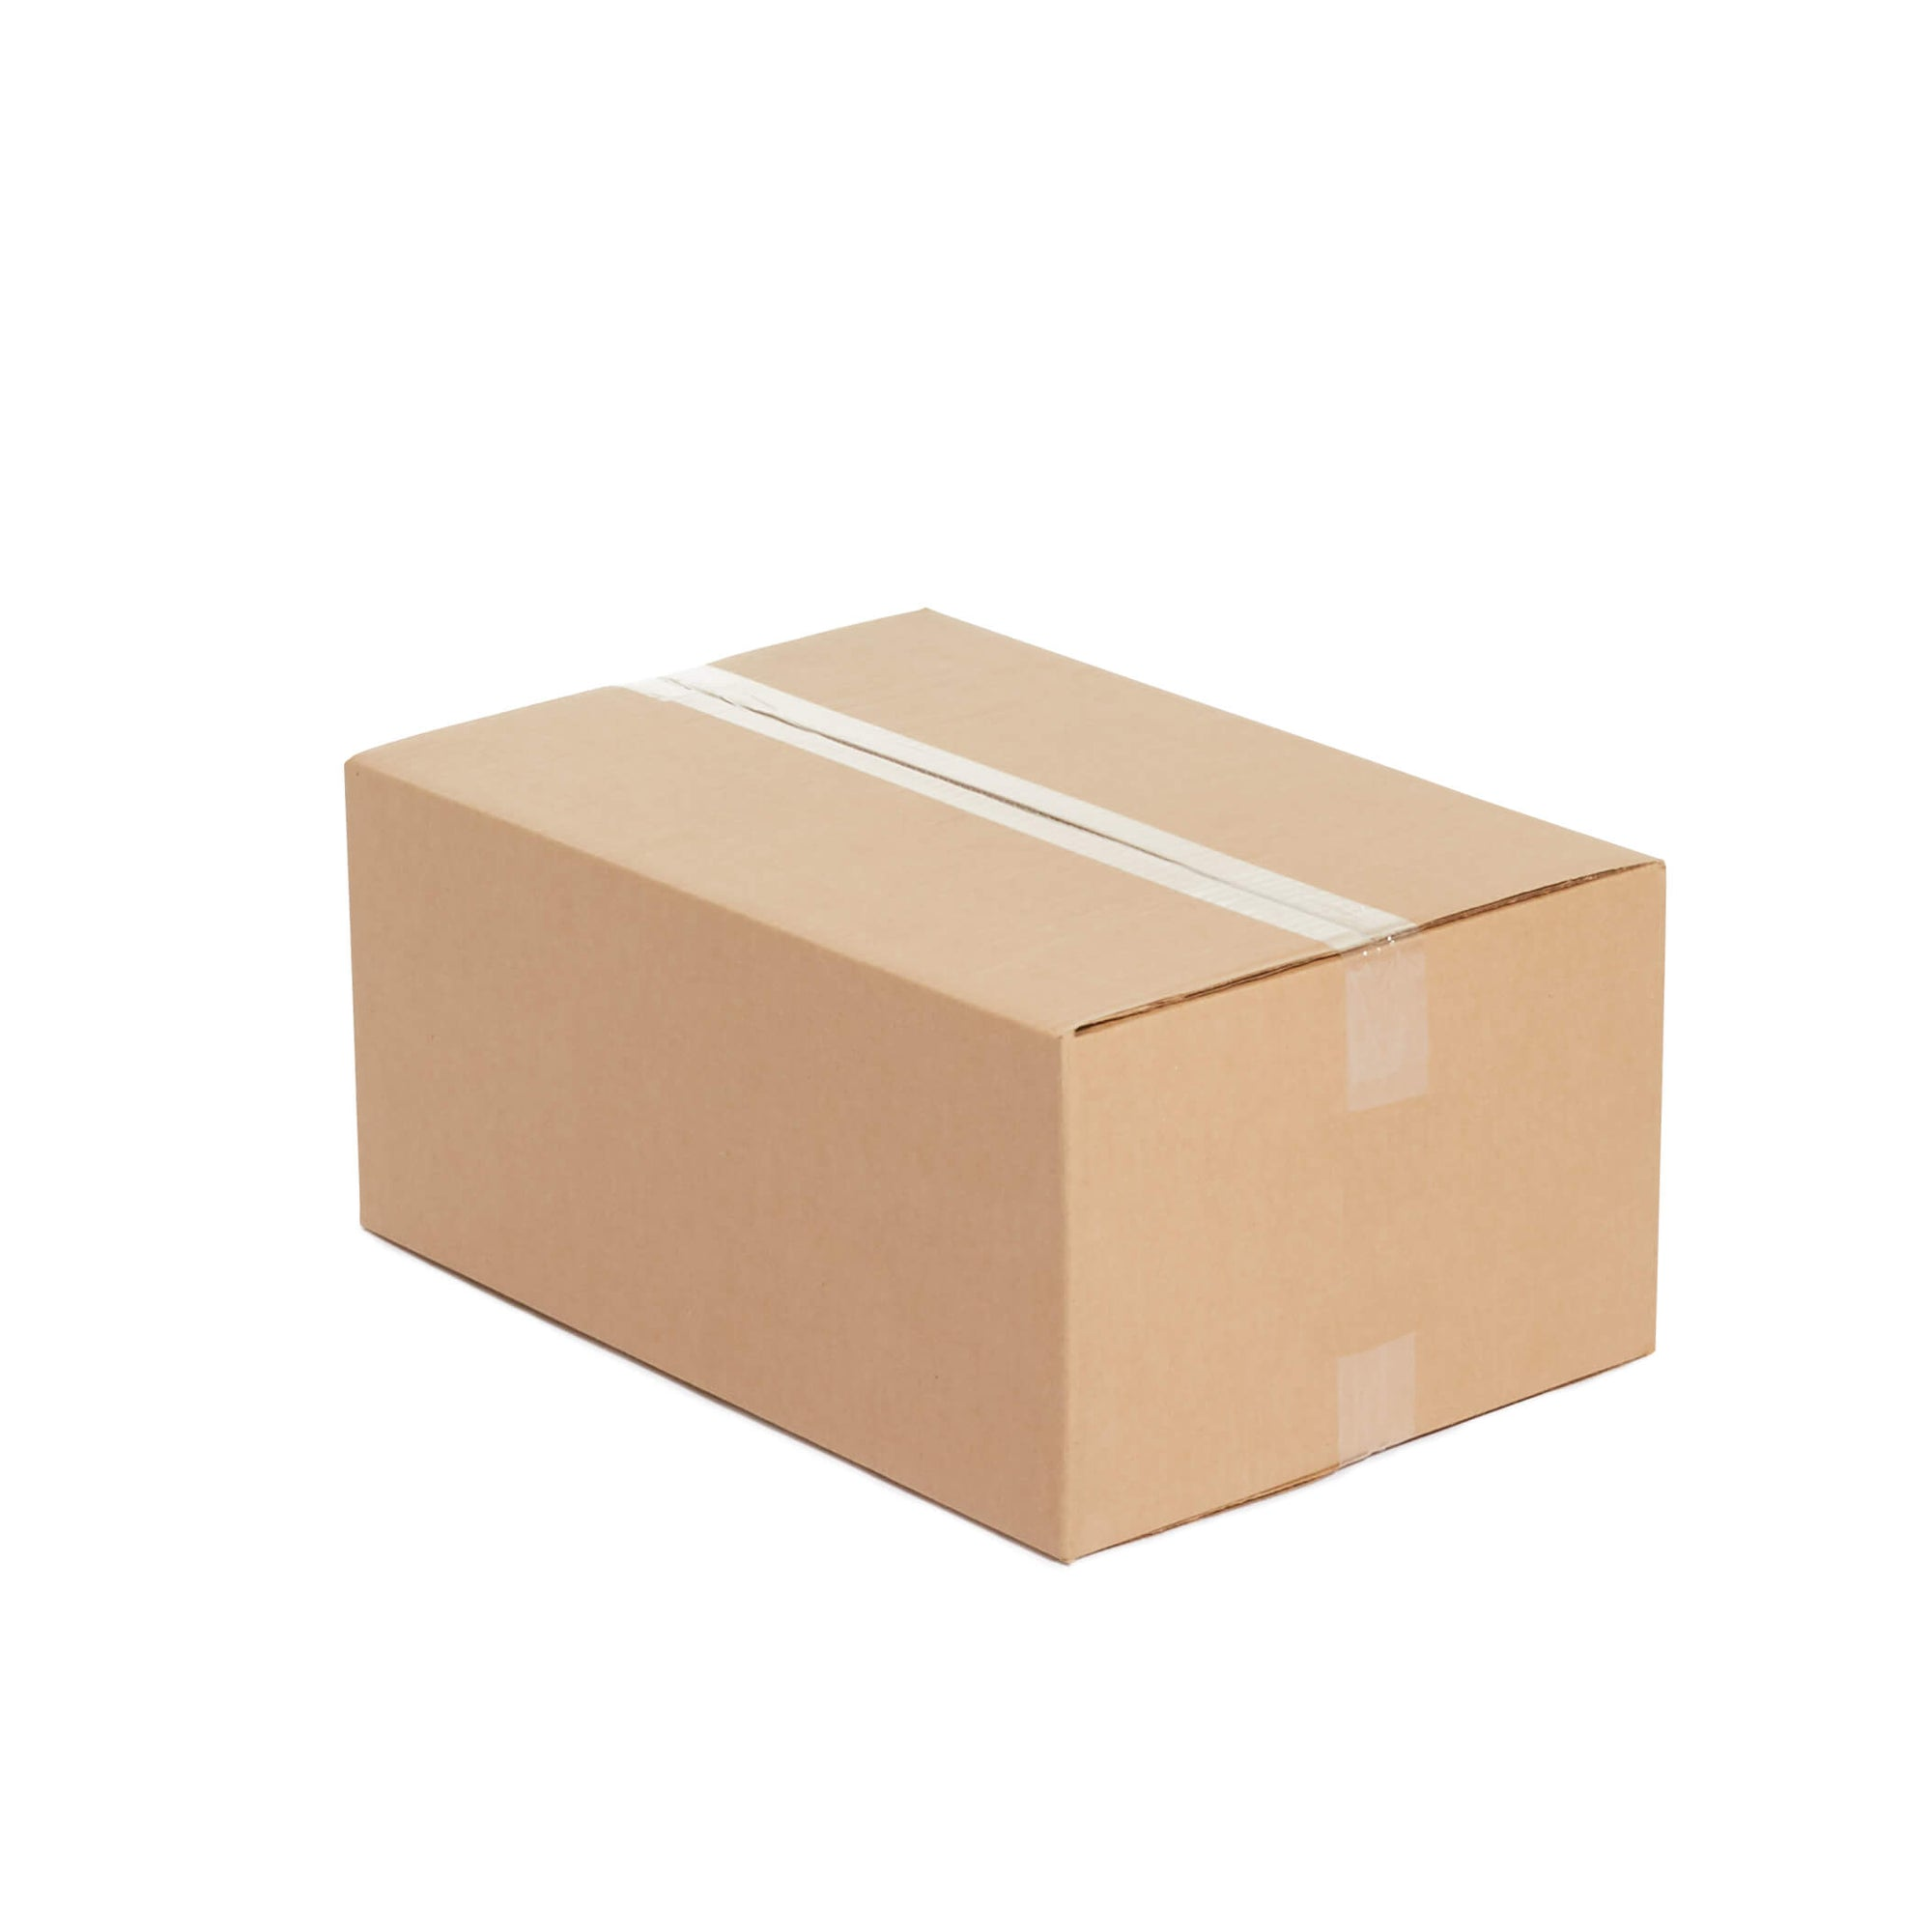 Medium Shipping Box Packing R Us Moving Packing Shipping Storing Boxes